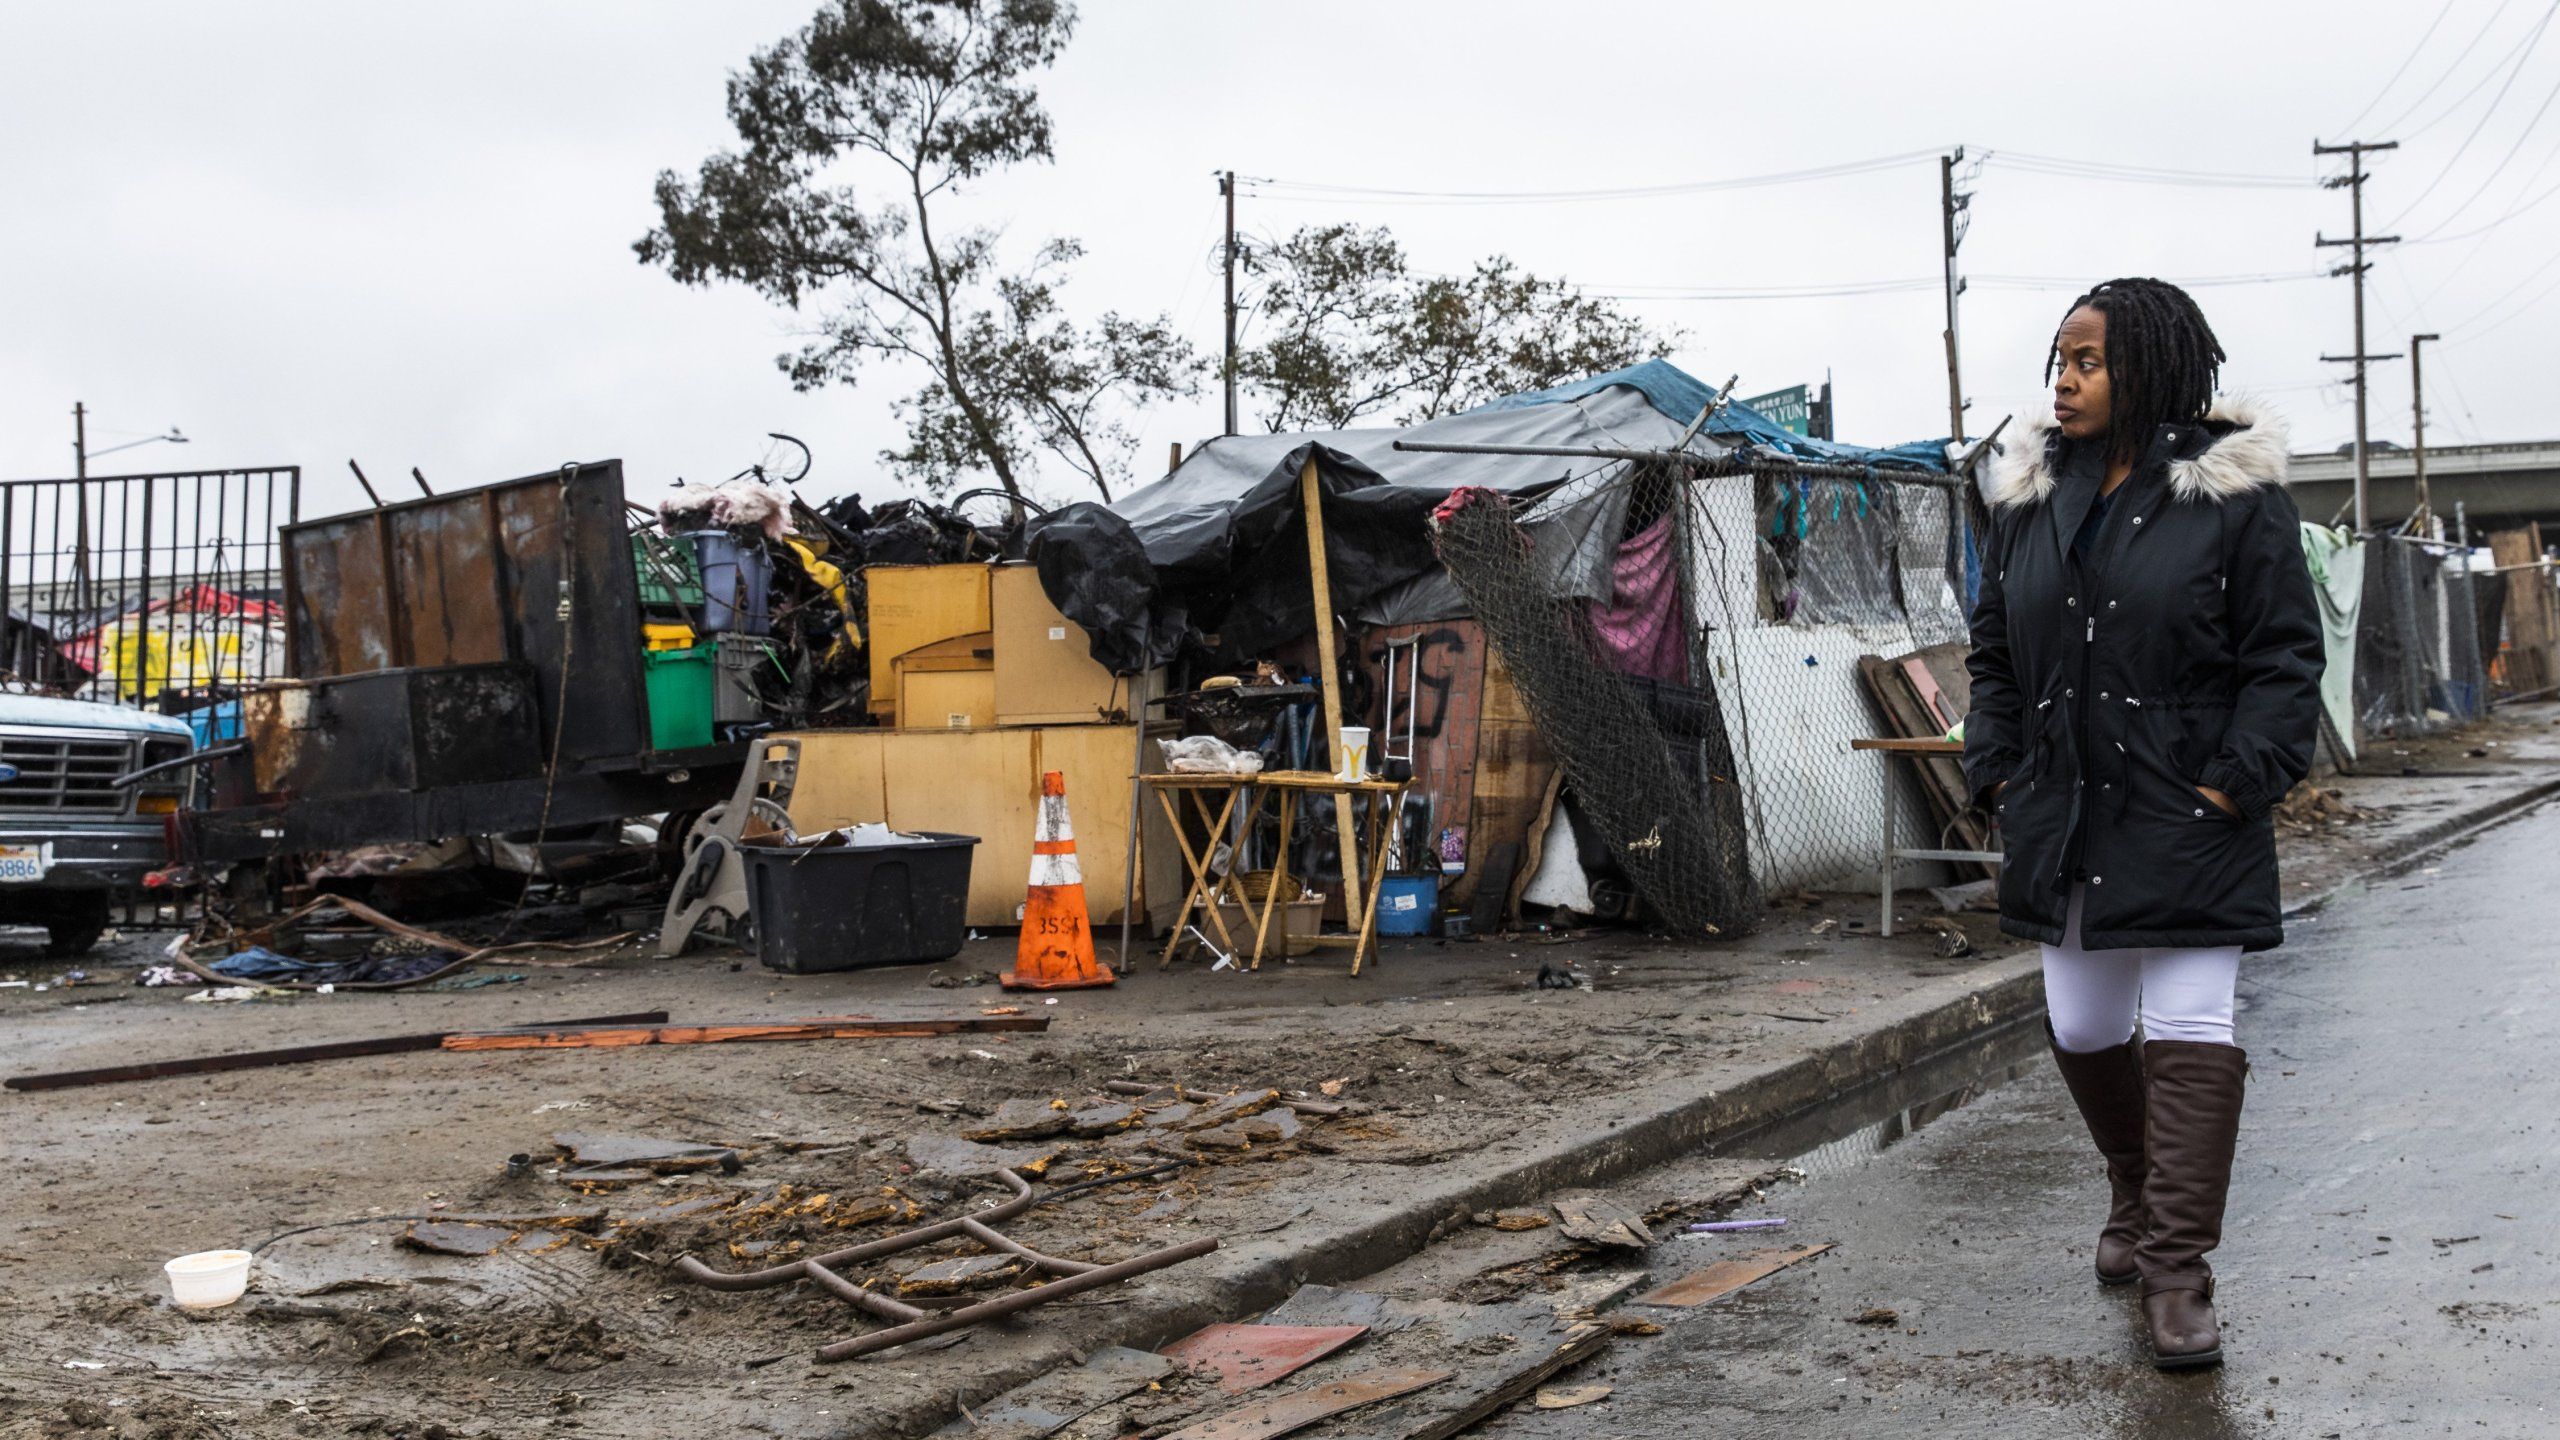 Carroll Fife, the director of the Oakland office for the Alliance of Californians for Community Empowerment, walks outside a homeless encampment in Oakland on Jan. 28, 2020. (Credit: Philip Pacheco / AFP / Getty Images)